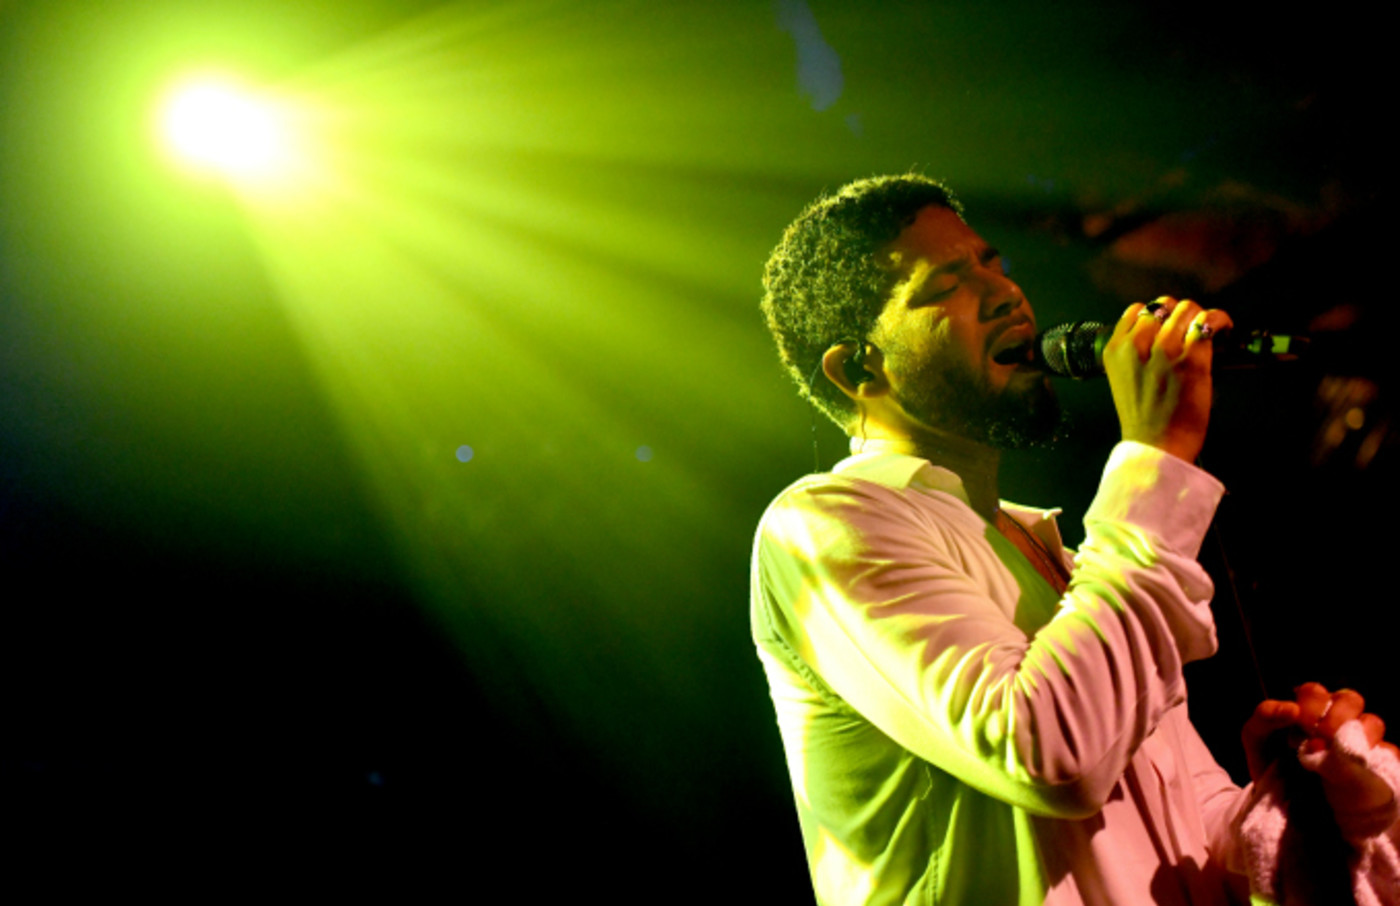 Singer Jussie Smollett performs onstage at Troubadour